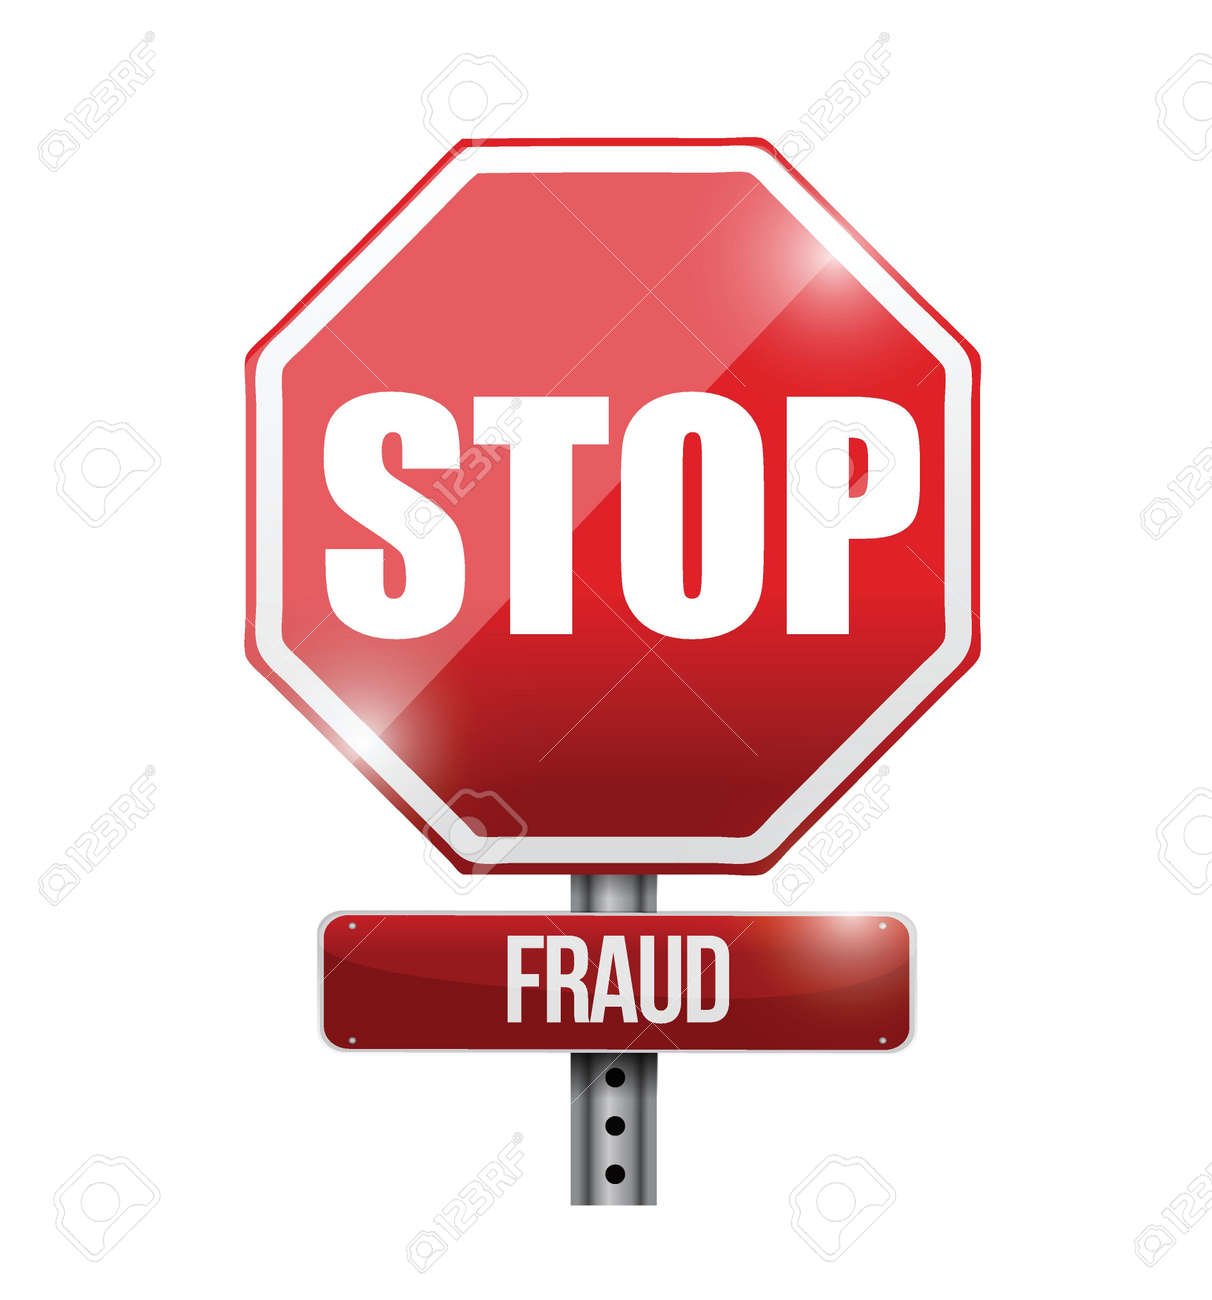 stop fraud road sign illustration design over a white background Stock Vector - 21814194